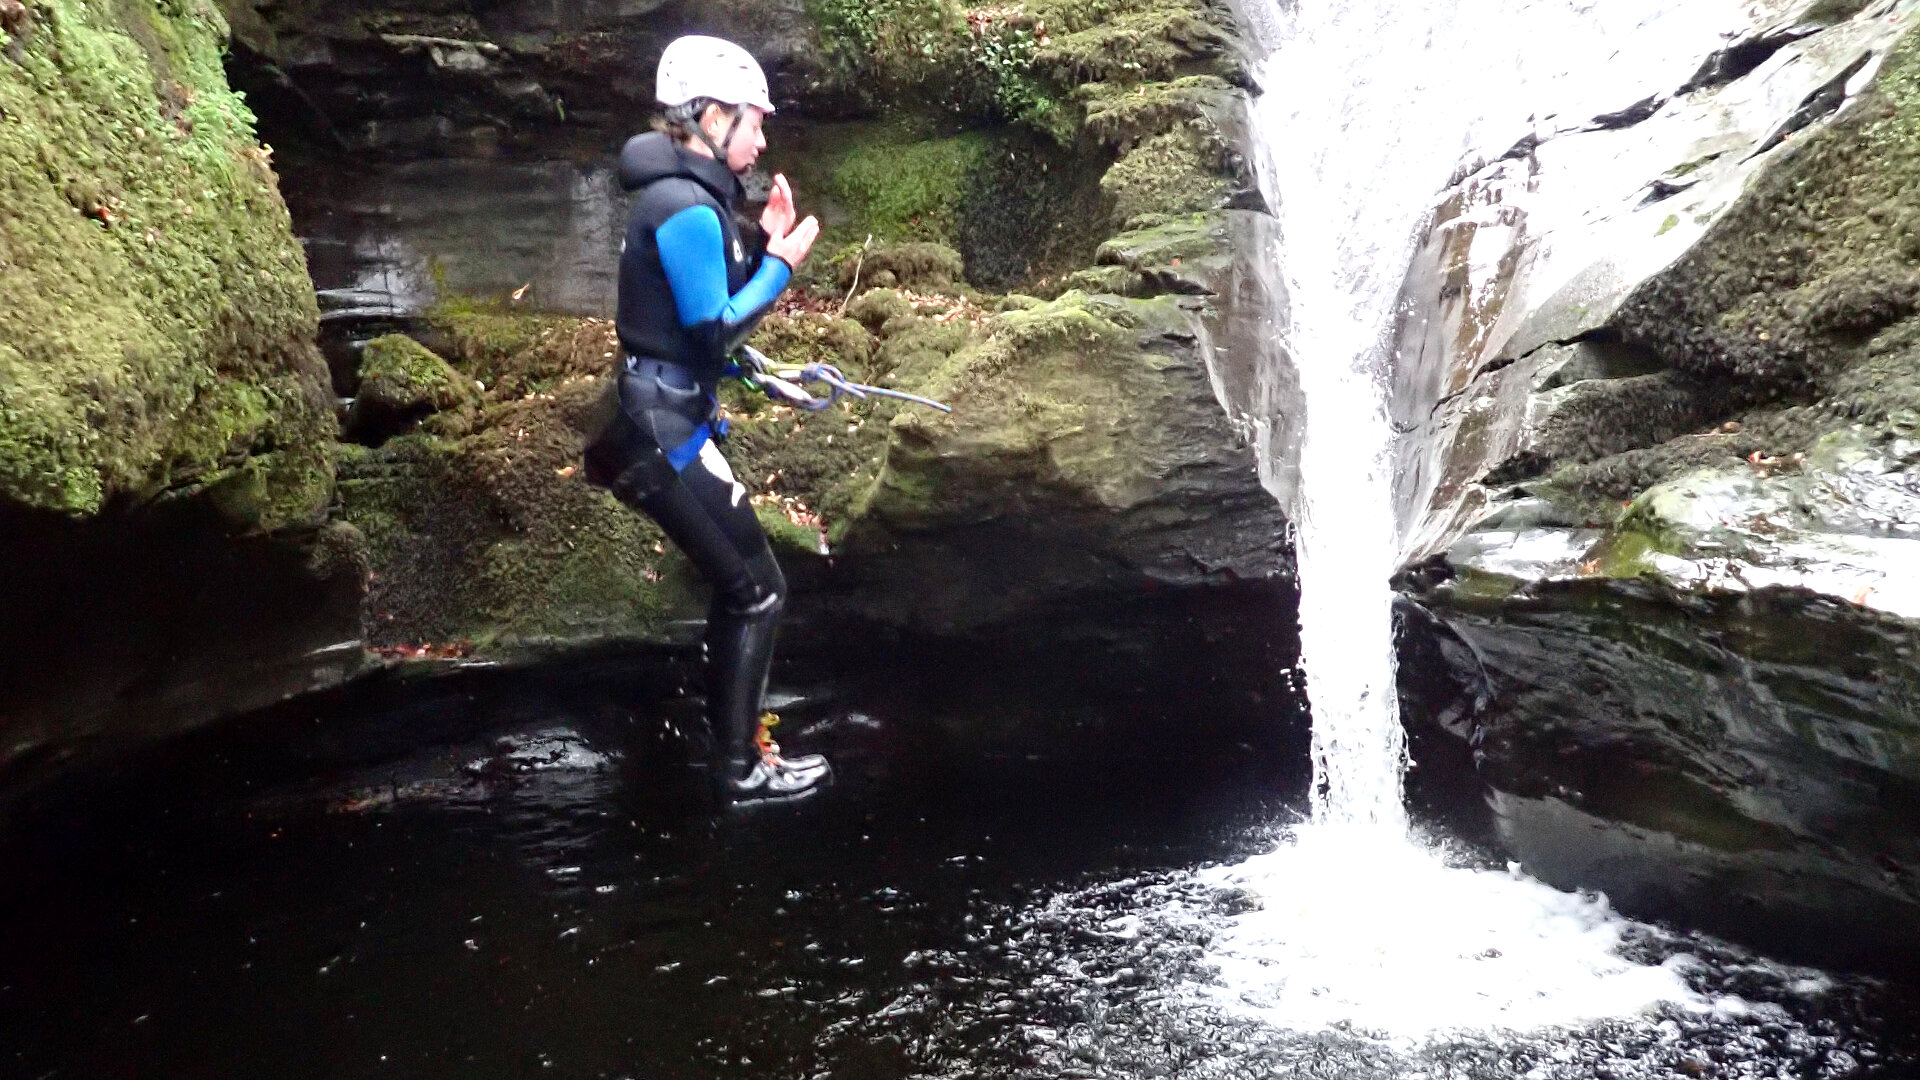 canyoneer jumping into plung pool